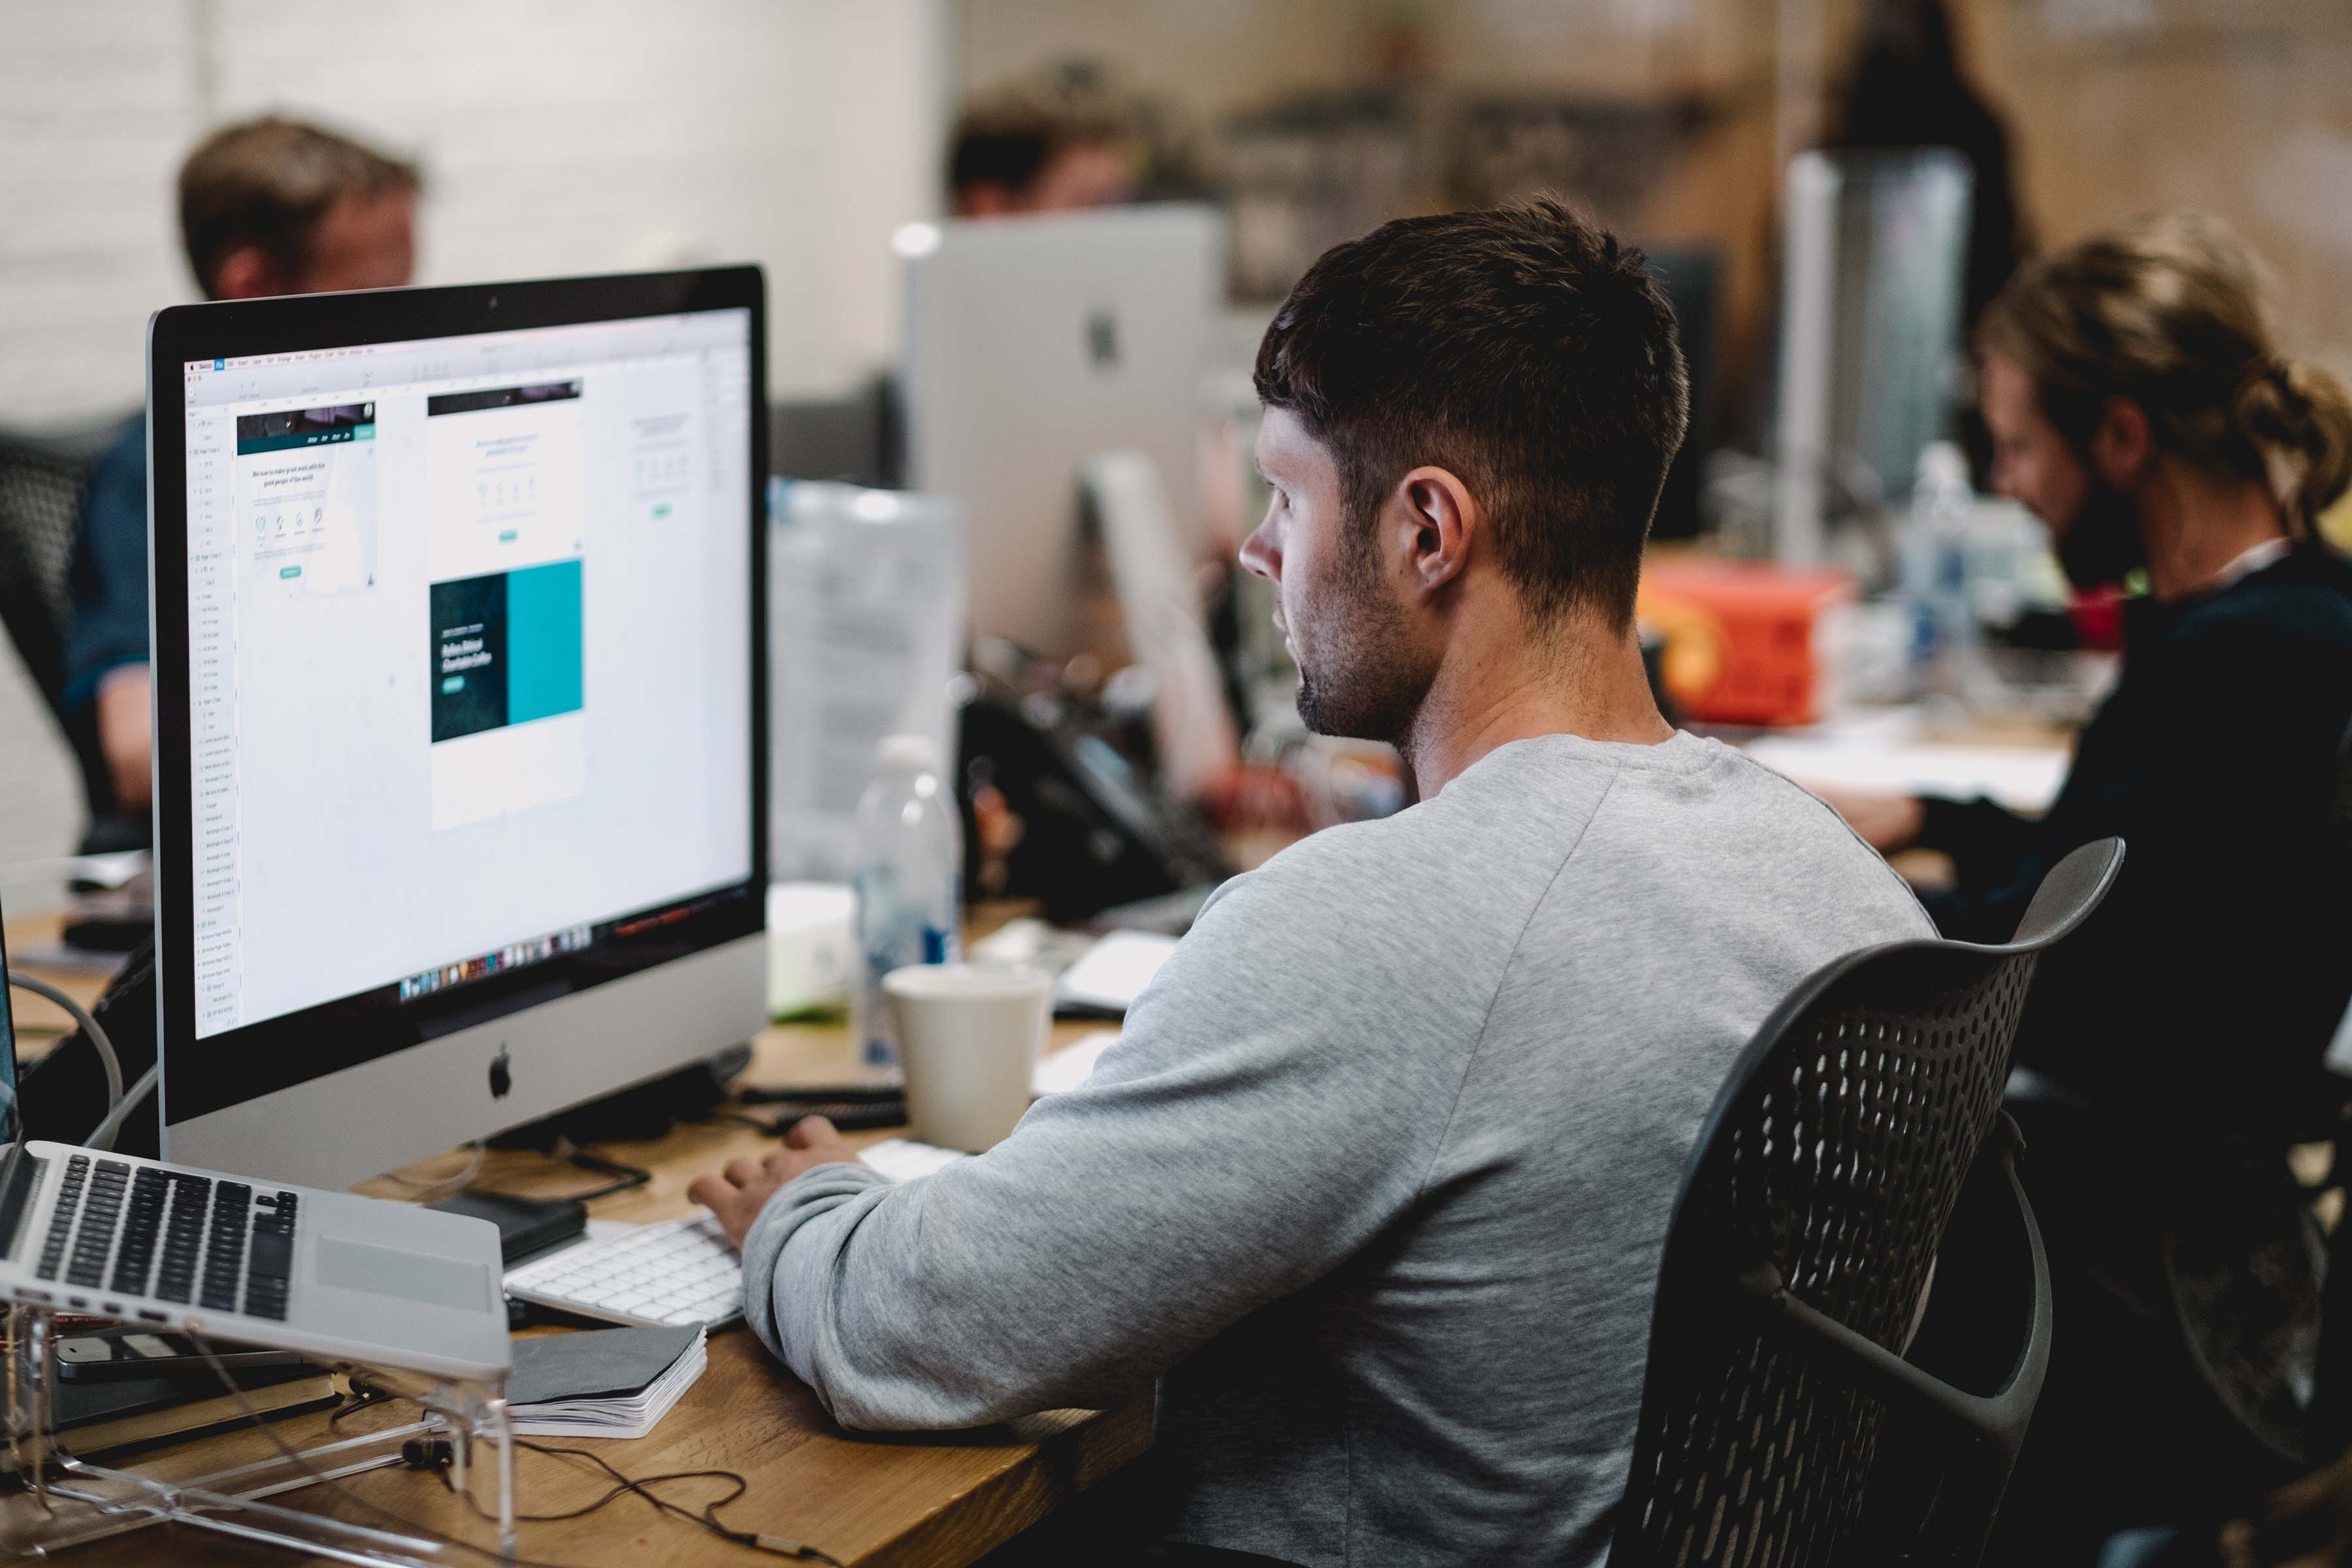 man in gray sweatshirt sitting on chair in front of iMac